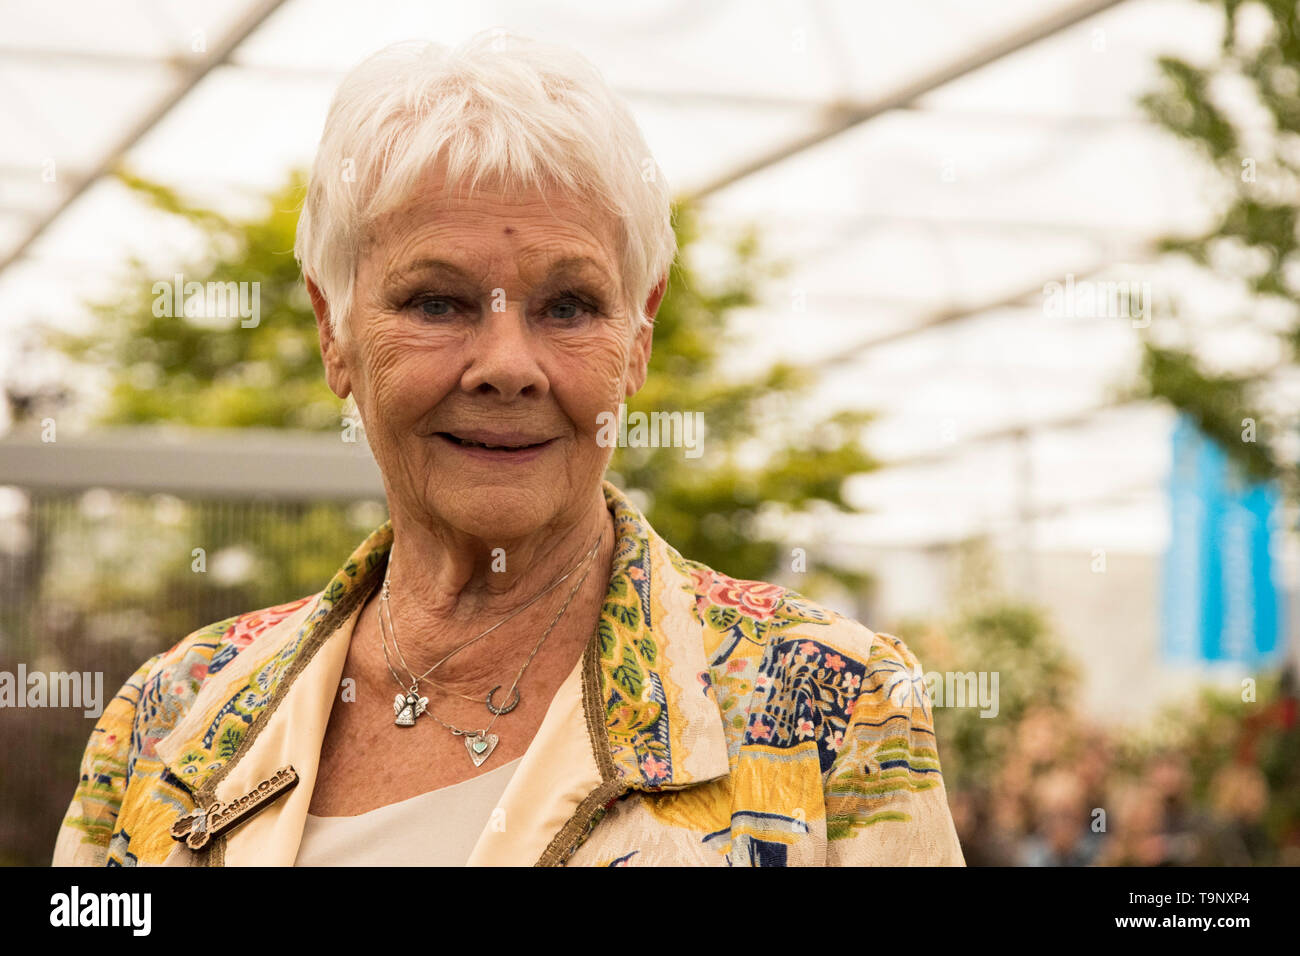 London, UK. 20 May 2019. Dame Judi Dench. Press Day at the 2019 RHS Chelsea Flower Show. Photo: Bettina Strenske/Alamy Live News Stock Photo